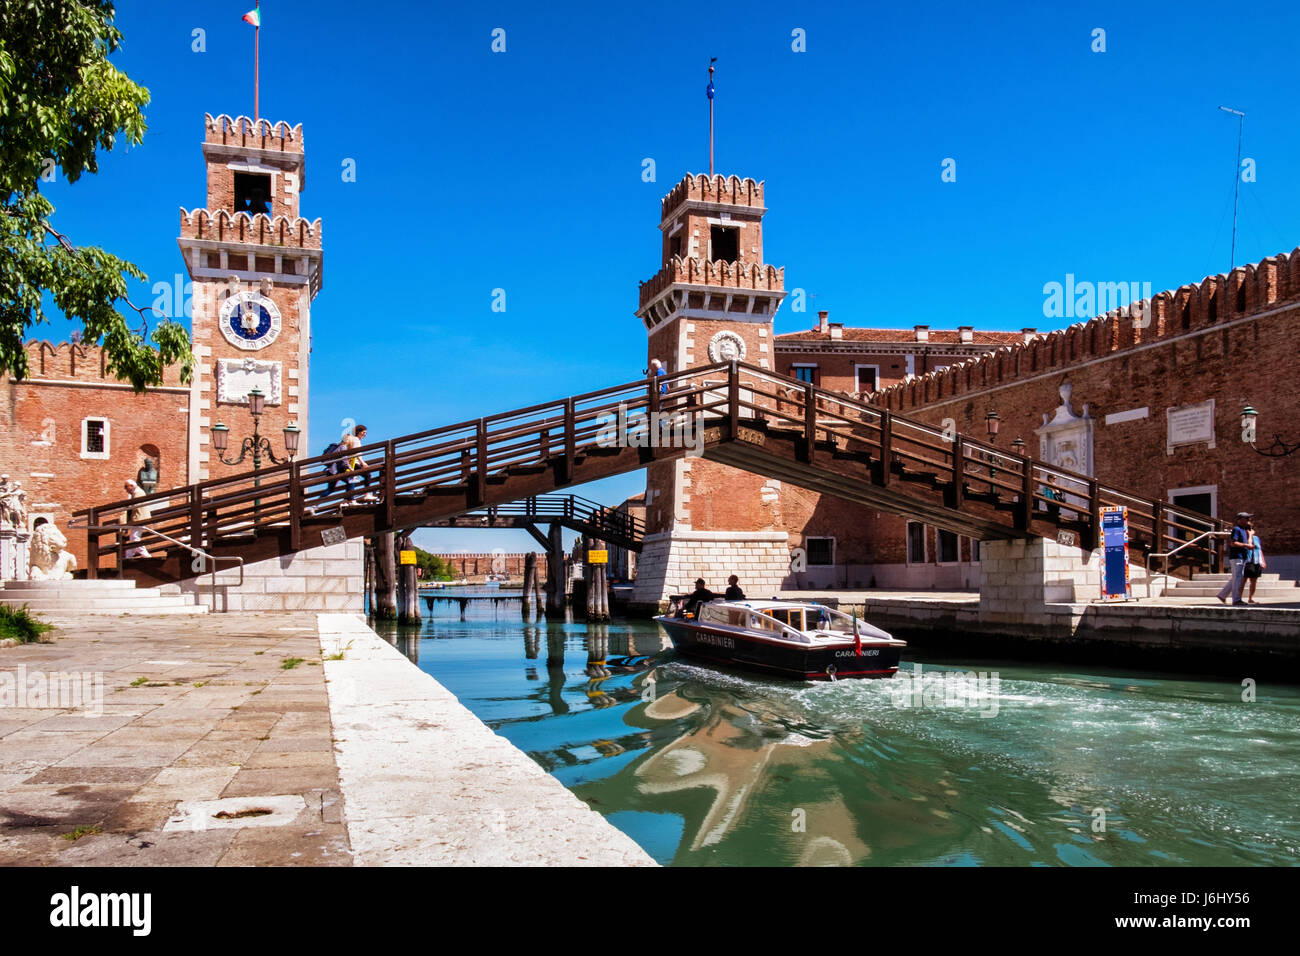 Arsenale,Venice, Italy - Entrance to the Naval Arsenal with Clock towers and and tourists crossing bridge over Rio Stock Photo